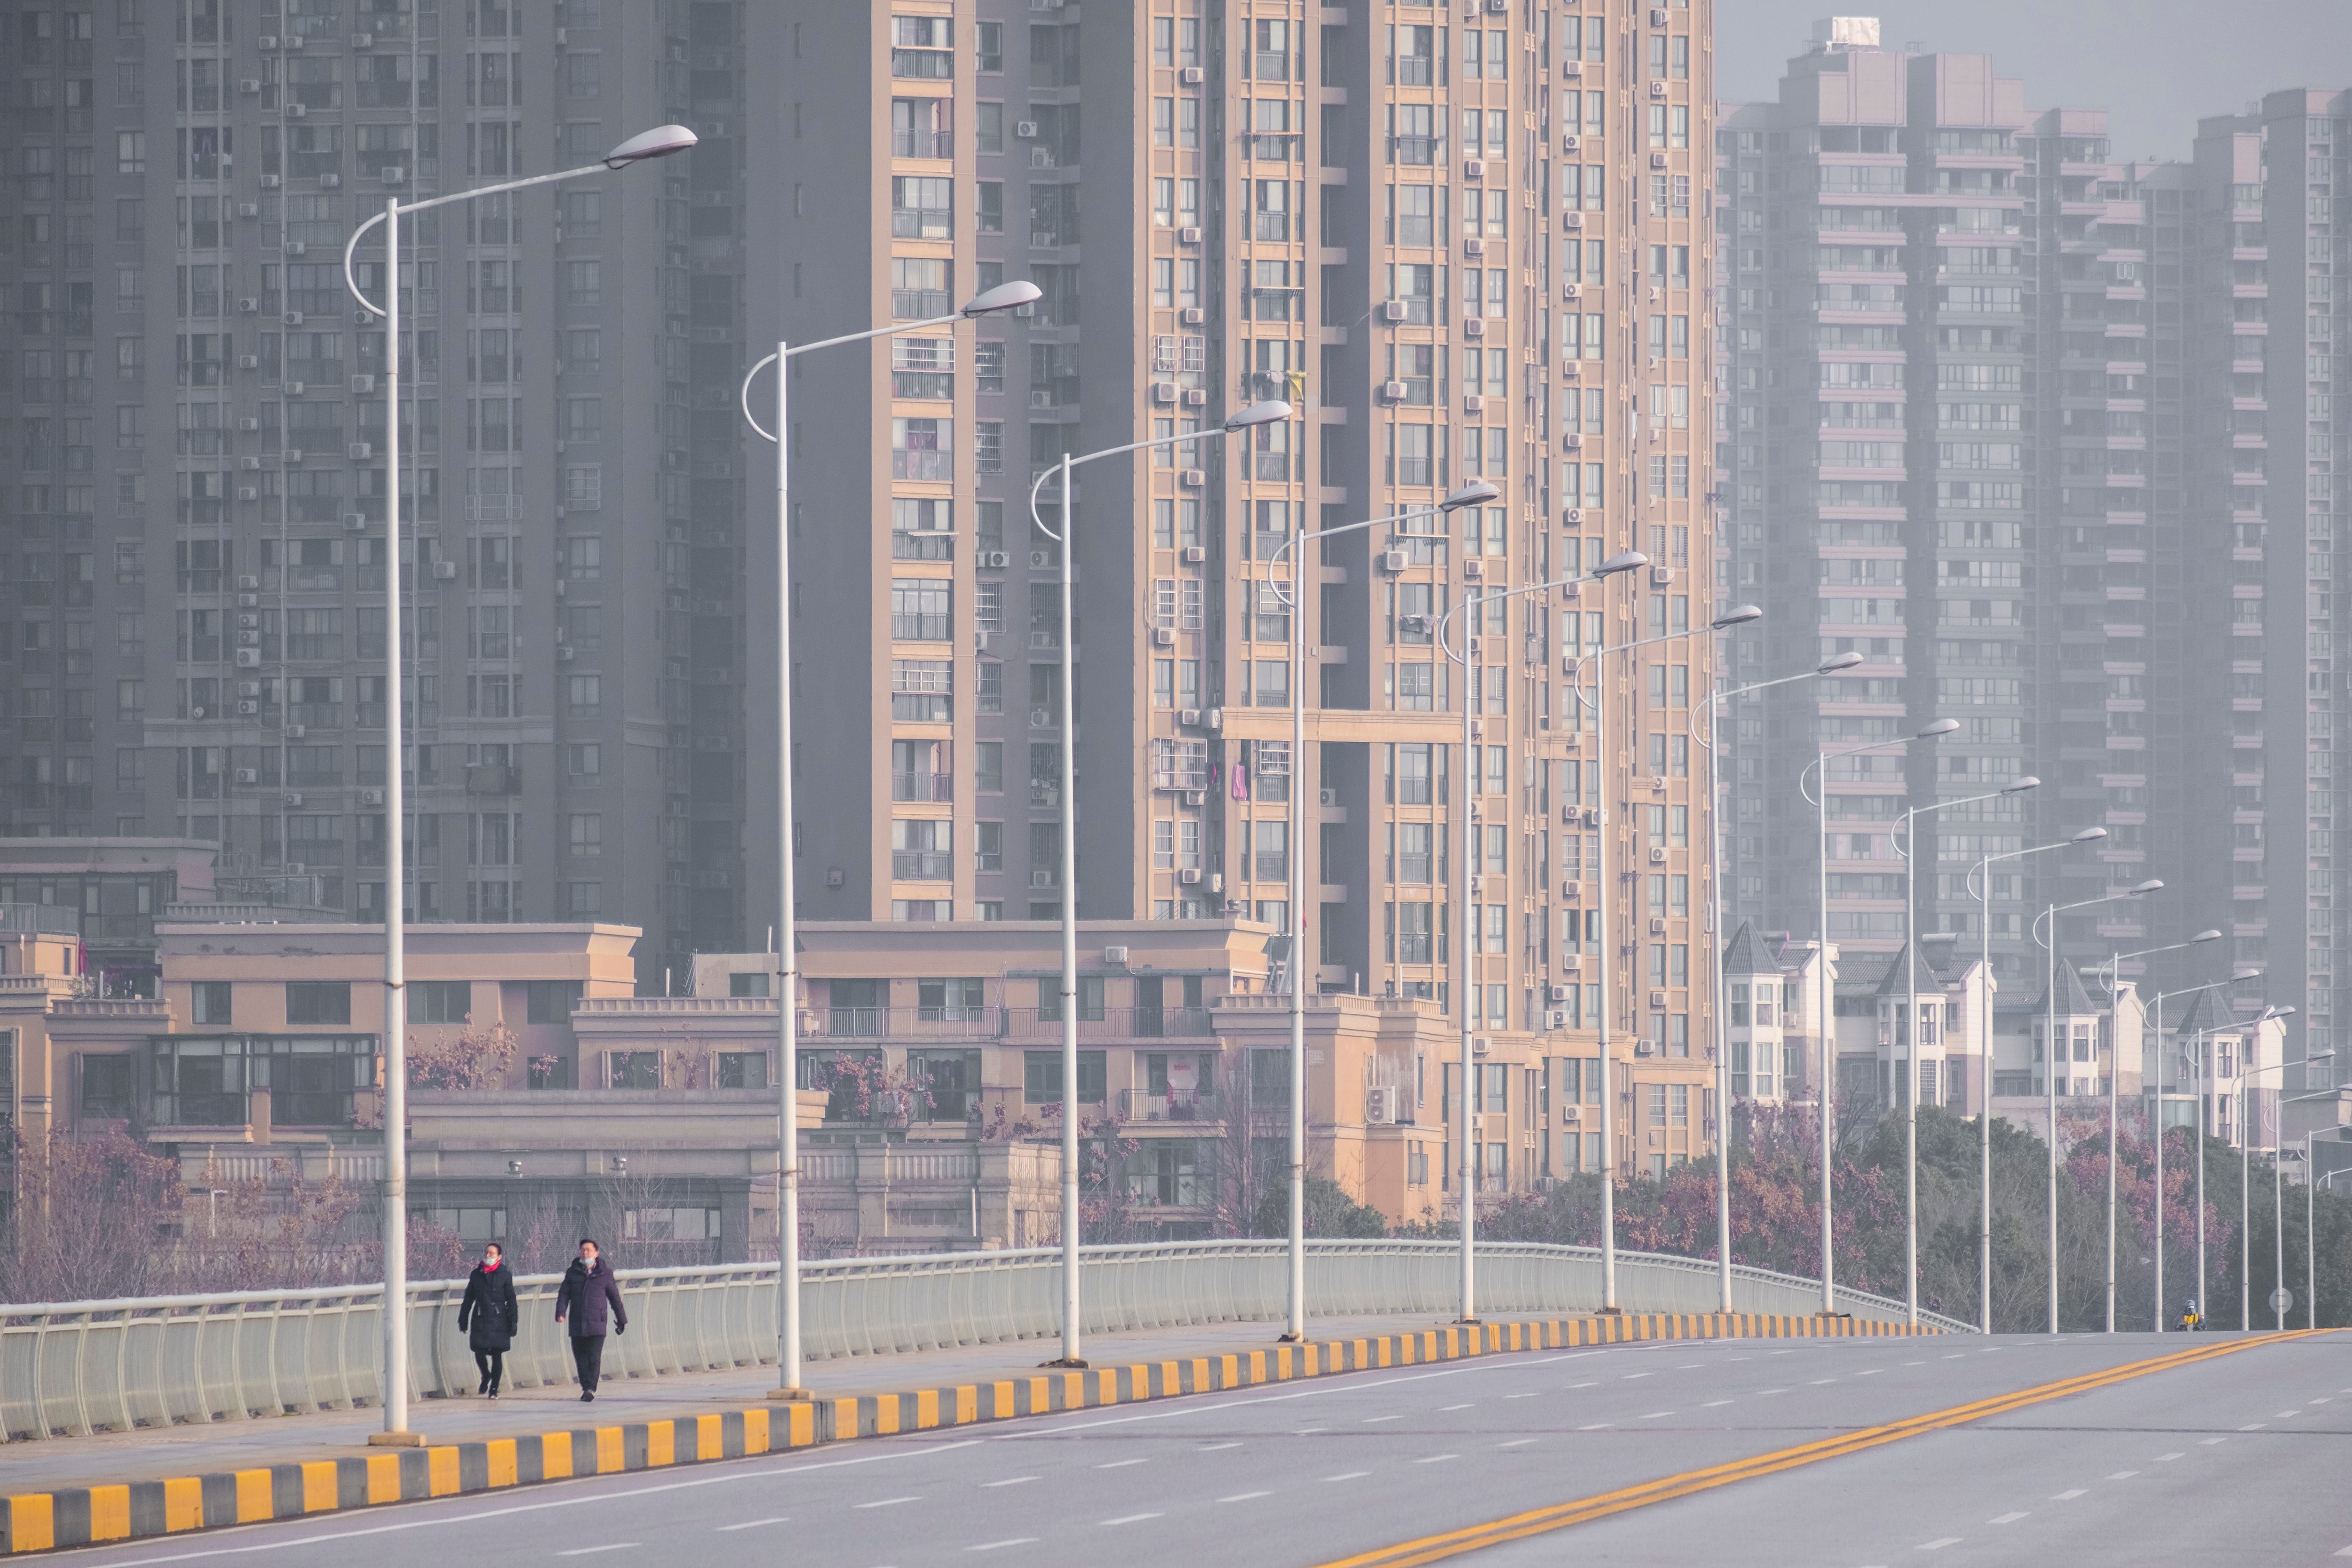 People wear face masks Jan. 28, 2020, when venturing out on the largely deserted streets of Wuhan in central China's Hubei Province.